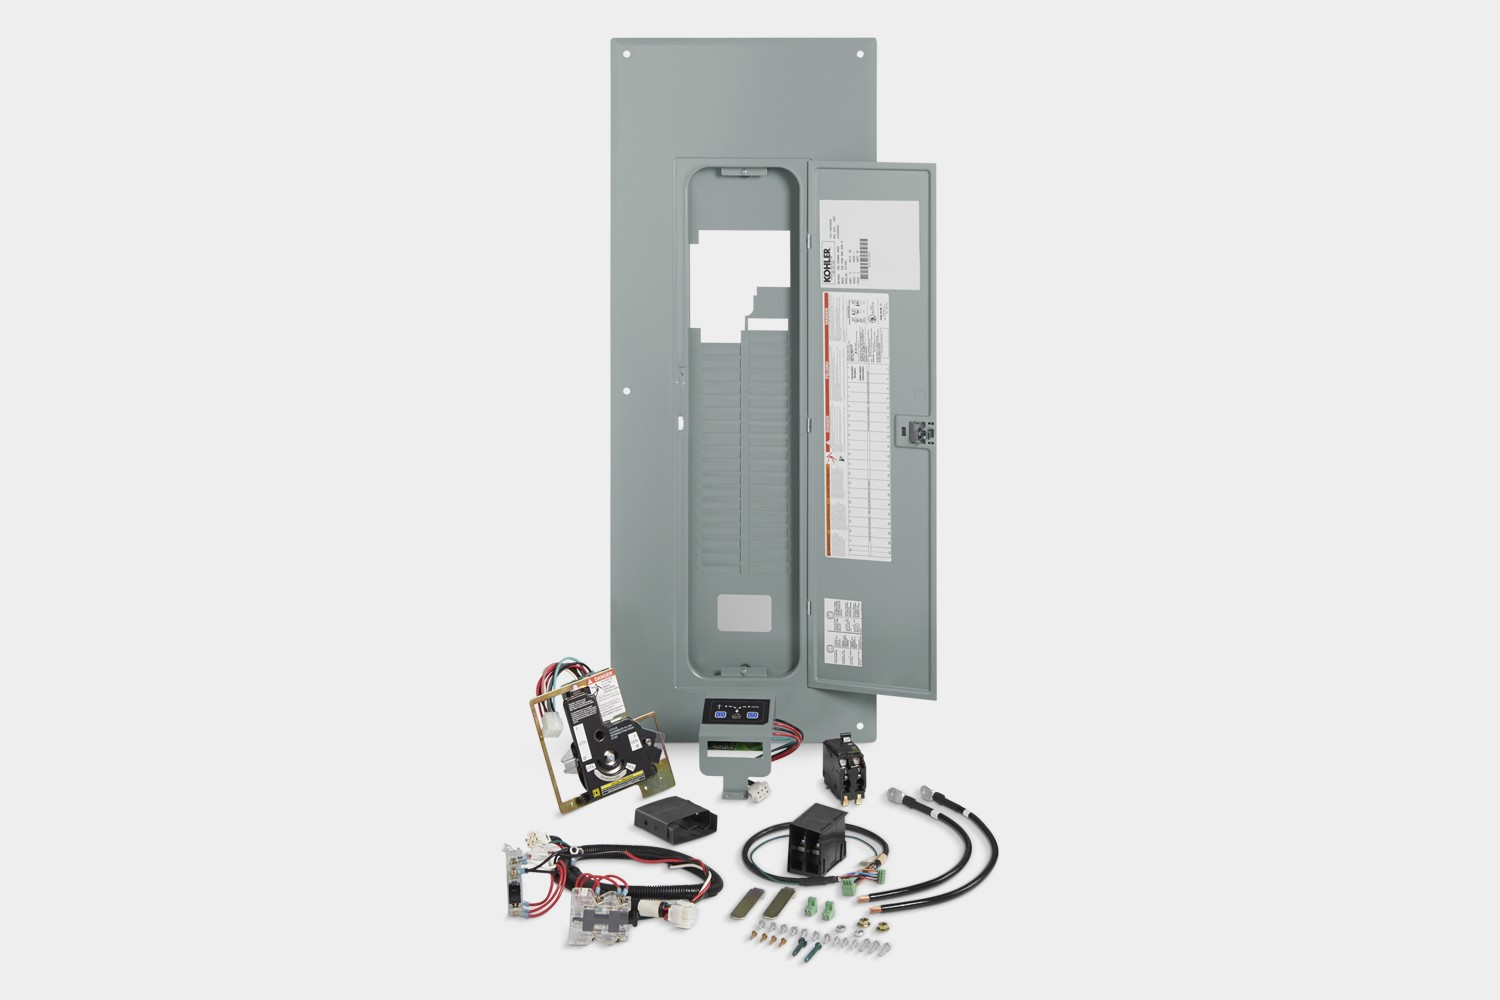 New - Home Electrical Transfer Switches For Home Generators | bunda